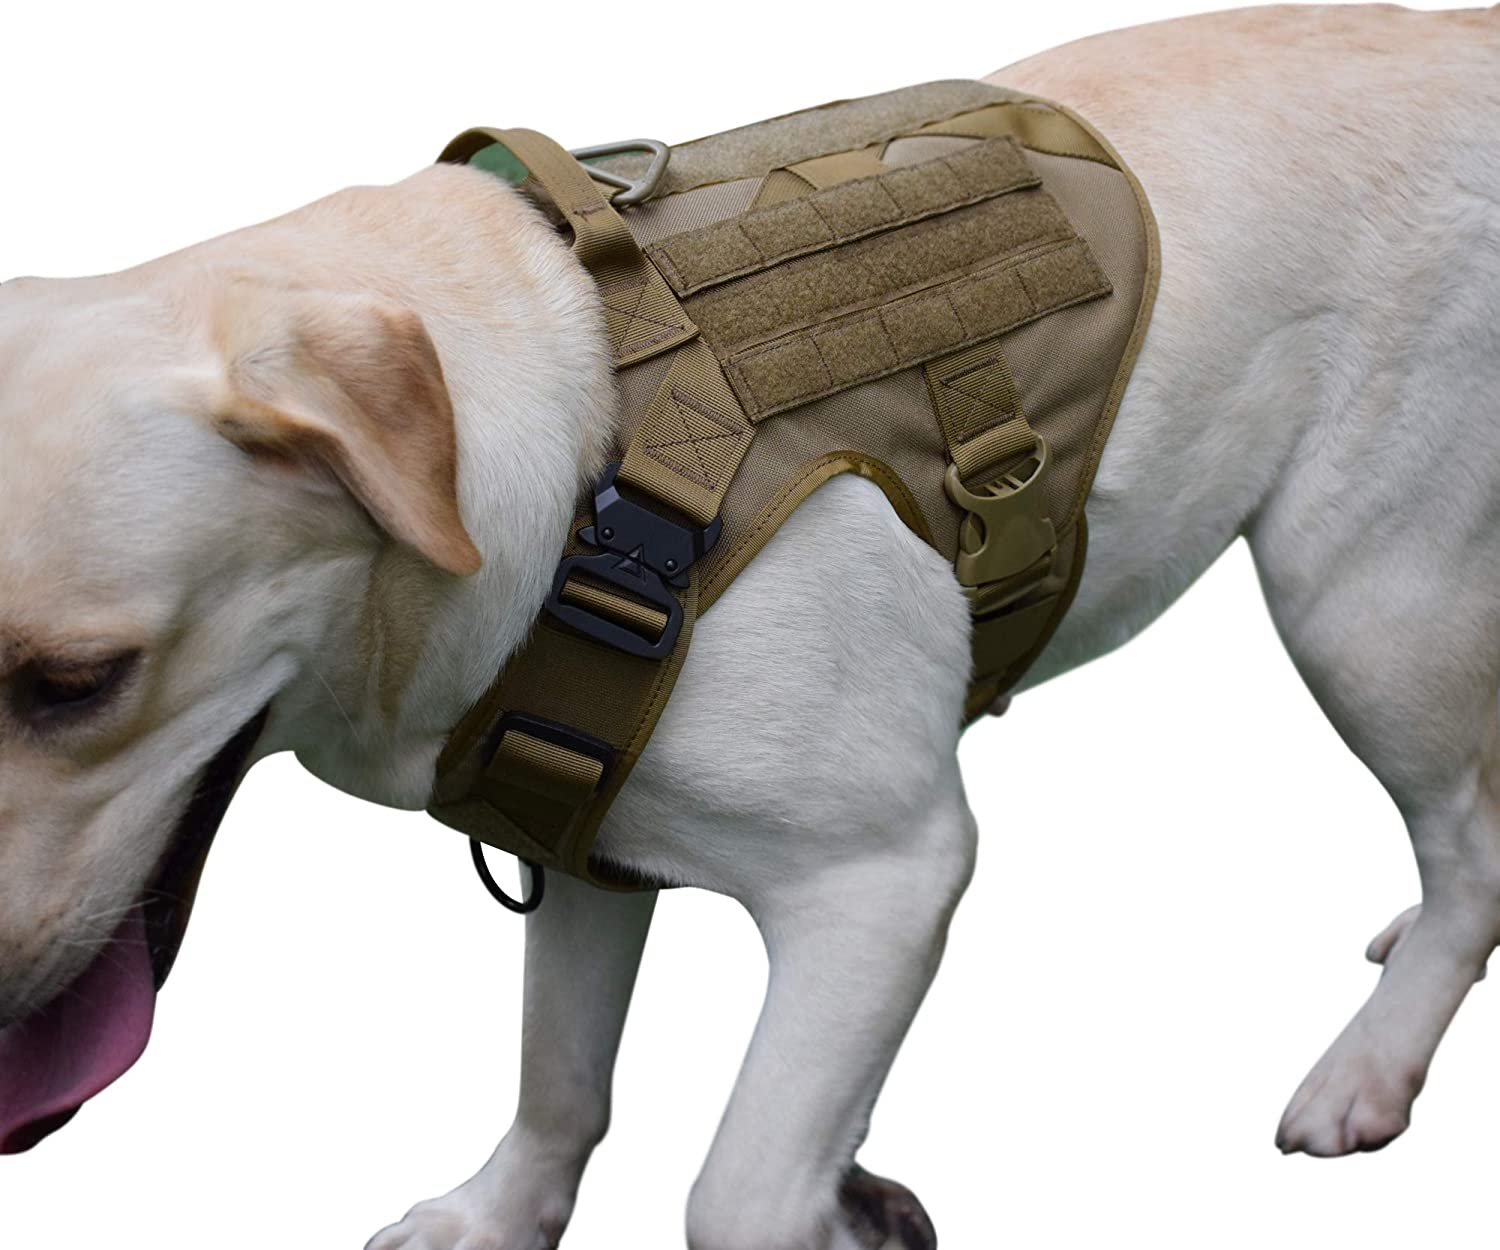 SHI RUI WaterResistant Tactical Military K9 Dog Harness Vest Walking Hiking Hunting MOLLE Training Harness for Service Dog (L, Tan)